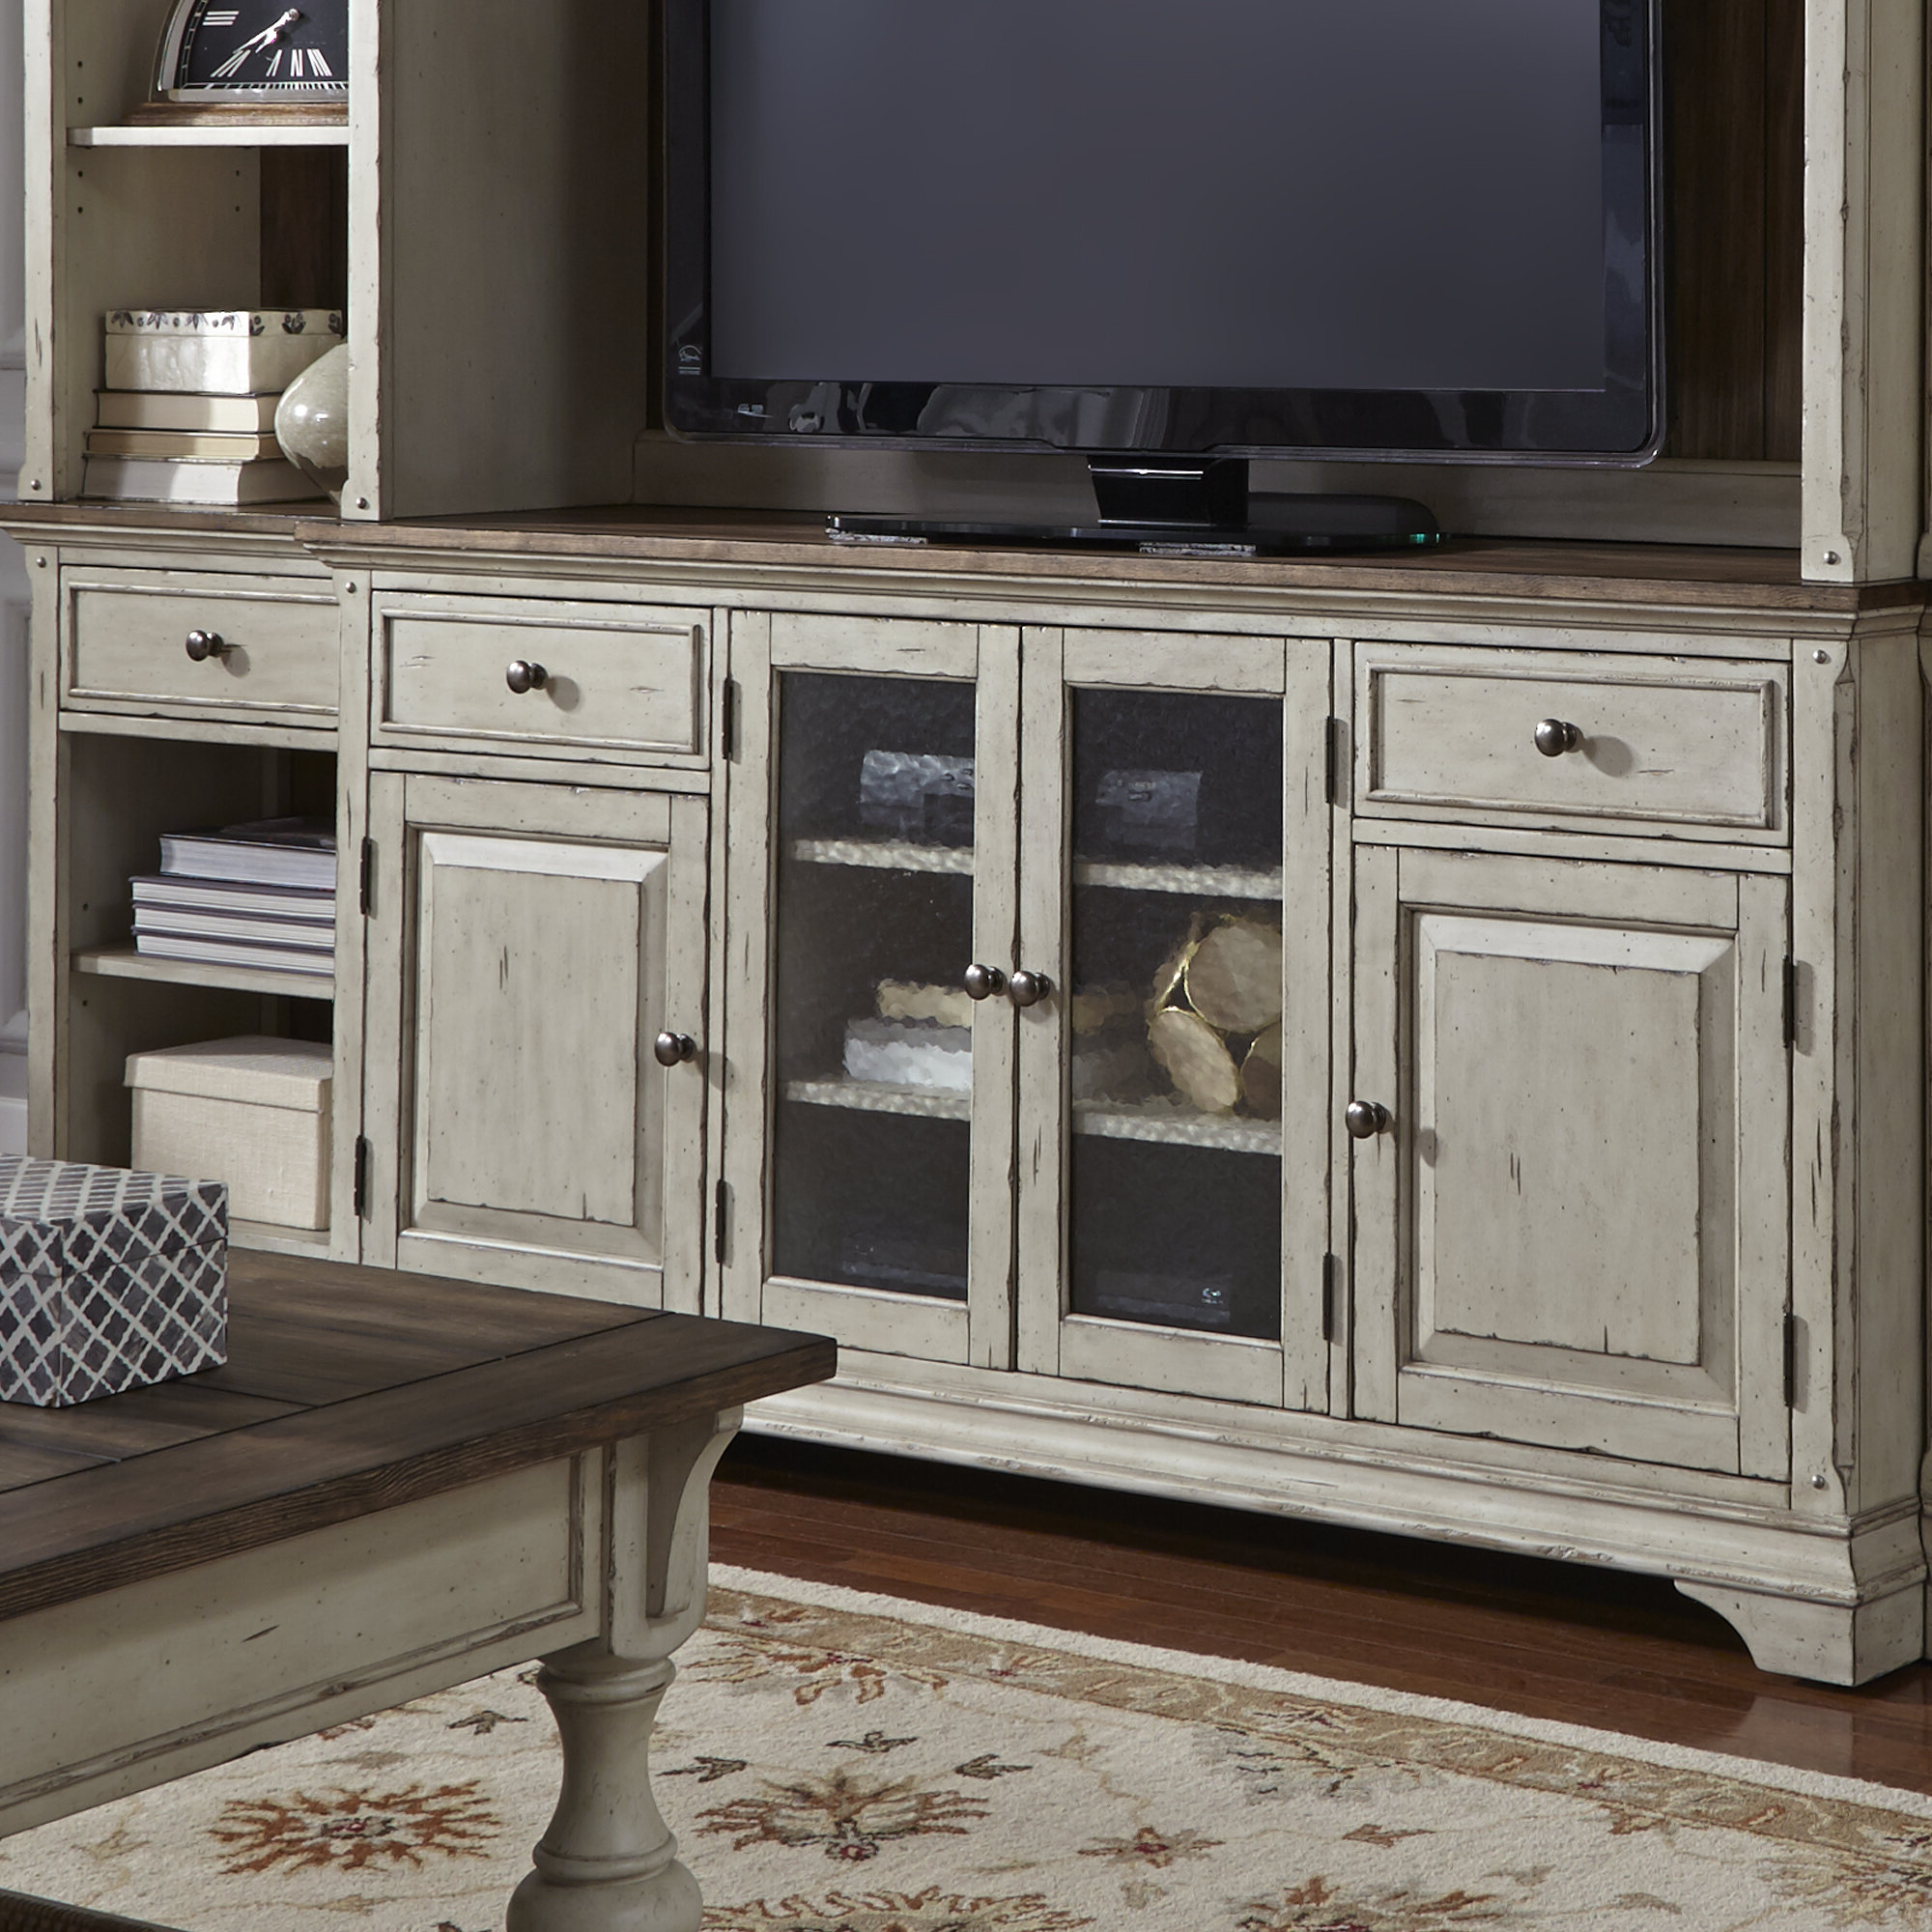 "Farmhouse & Rustic Rosecliff Heights Tv Stands | Birch Lane With Regard To Colefax Vintage Tv Stands For Tvs Up To 78"" (View 15 of 20)"